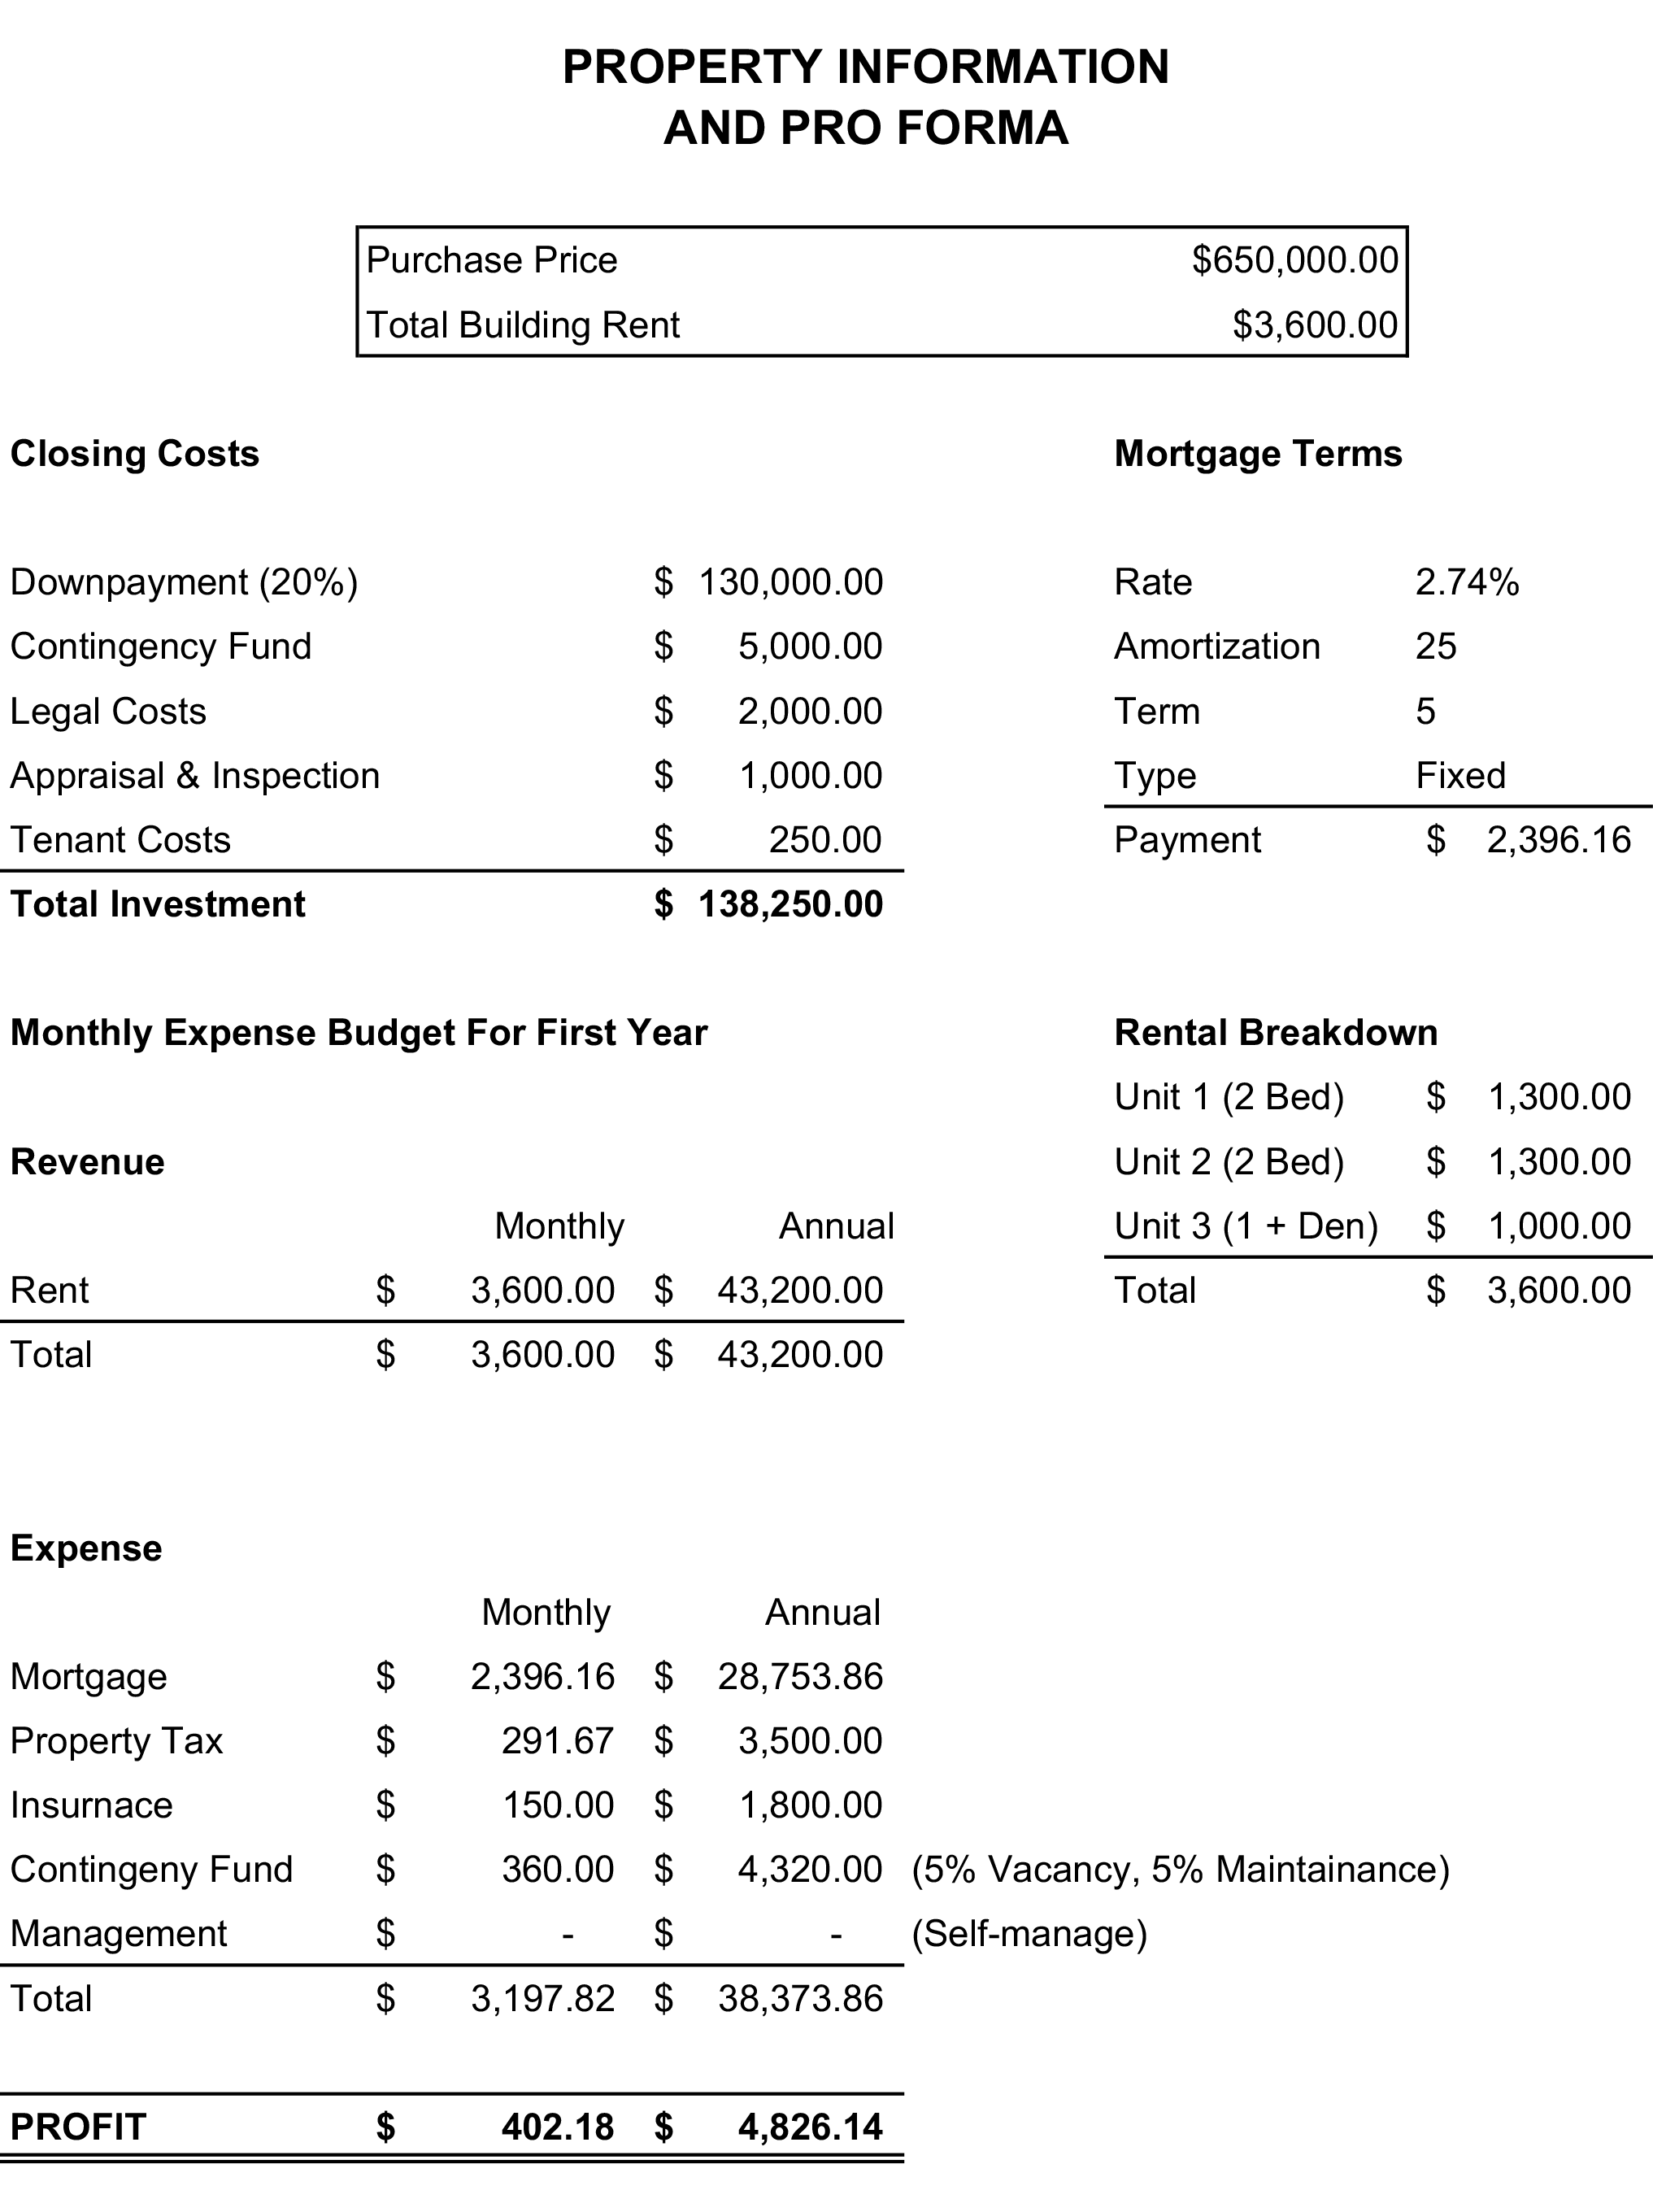 investing drew macmartin real estate 1 year pro forma example